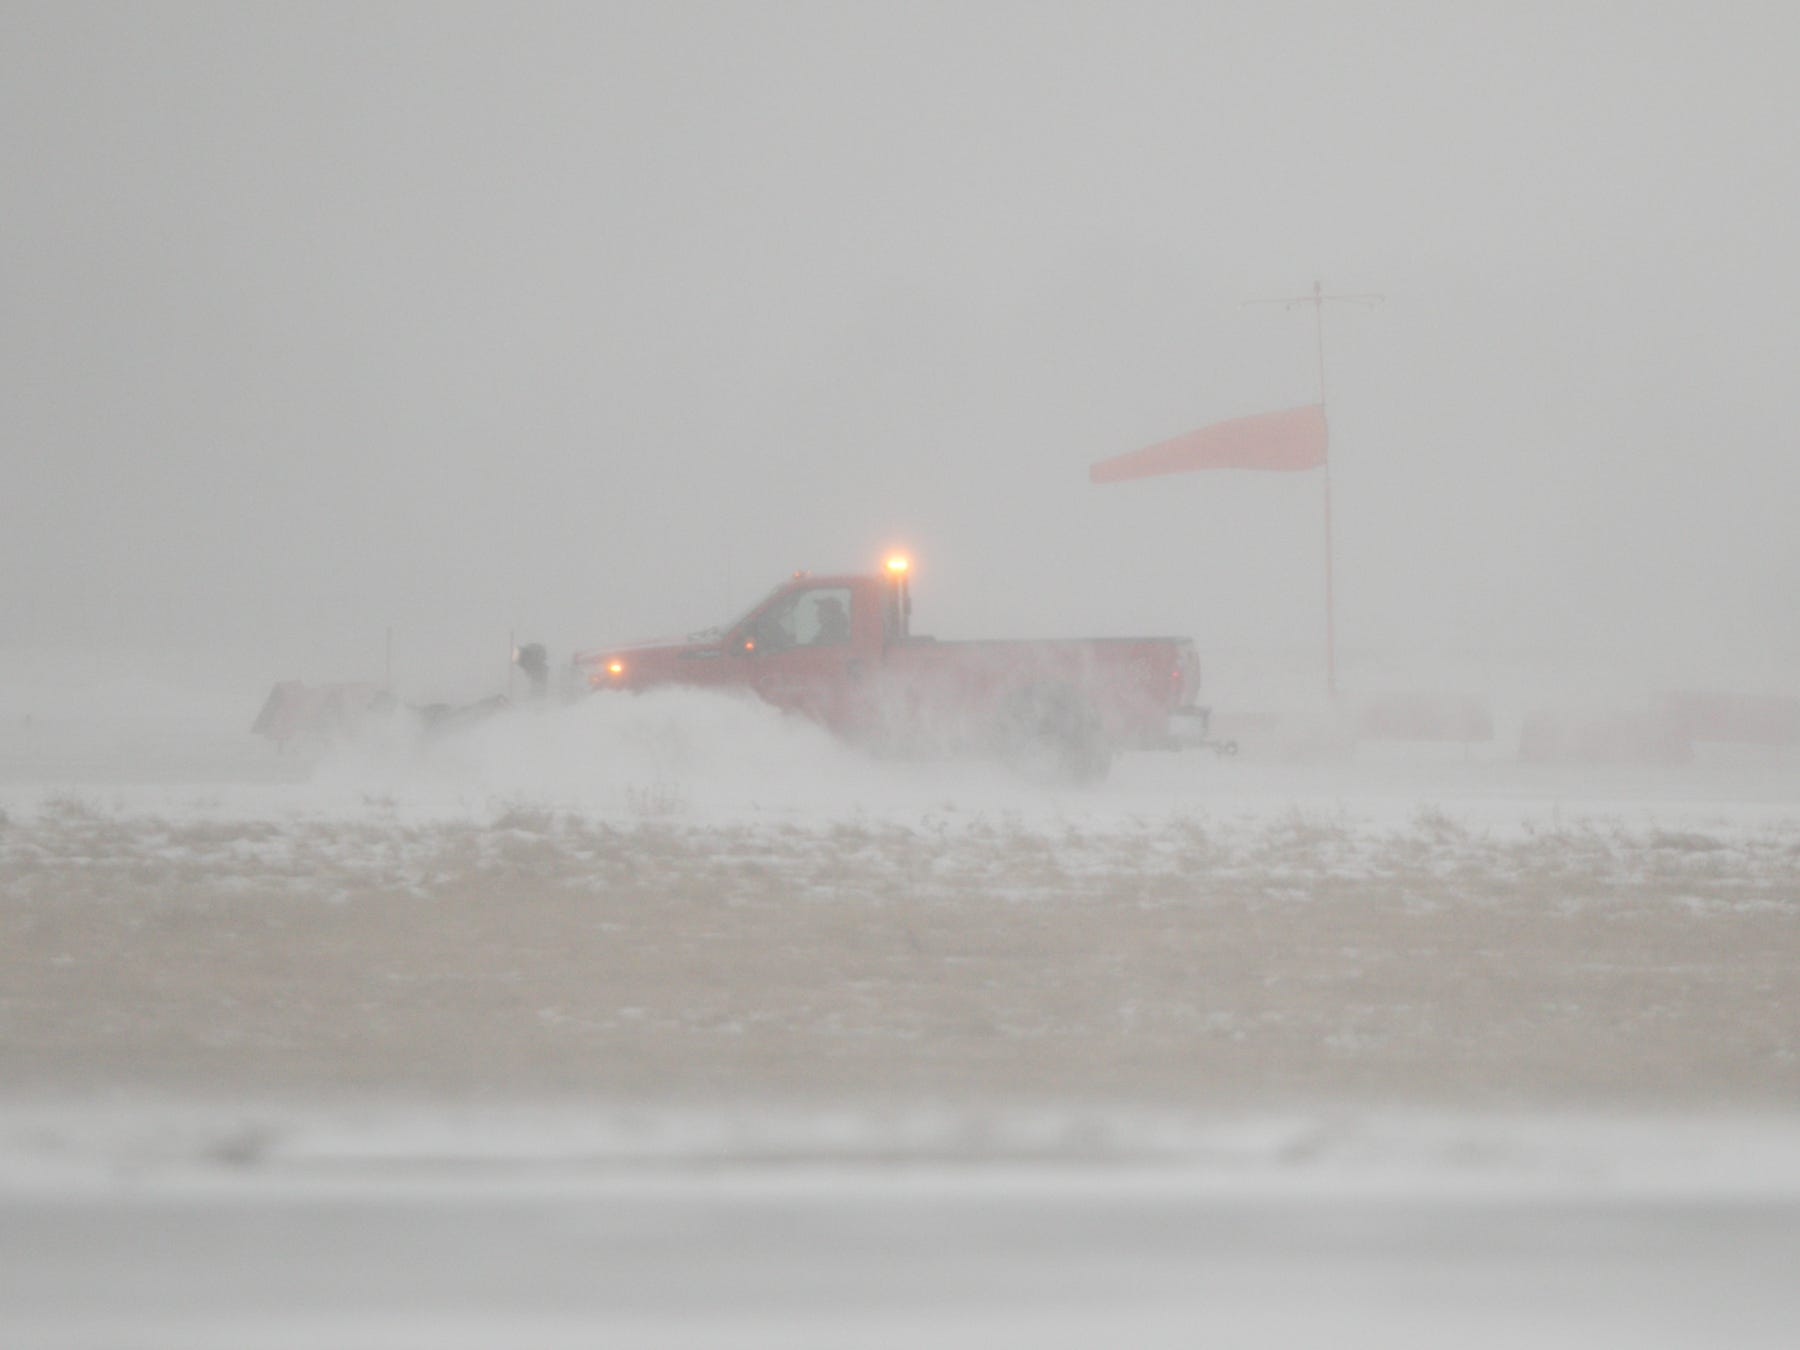 A snow plow clears a runway at the Livingston County Spencer J. Hardy Airport as snow continues to fall Monday morning, Jan. 28, 2019.